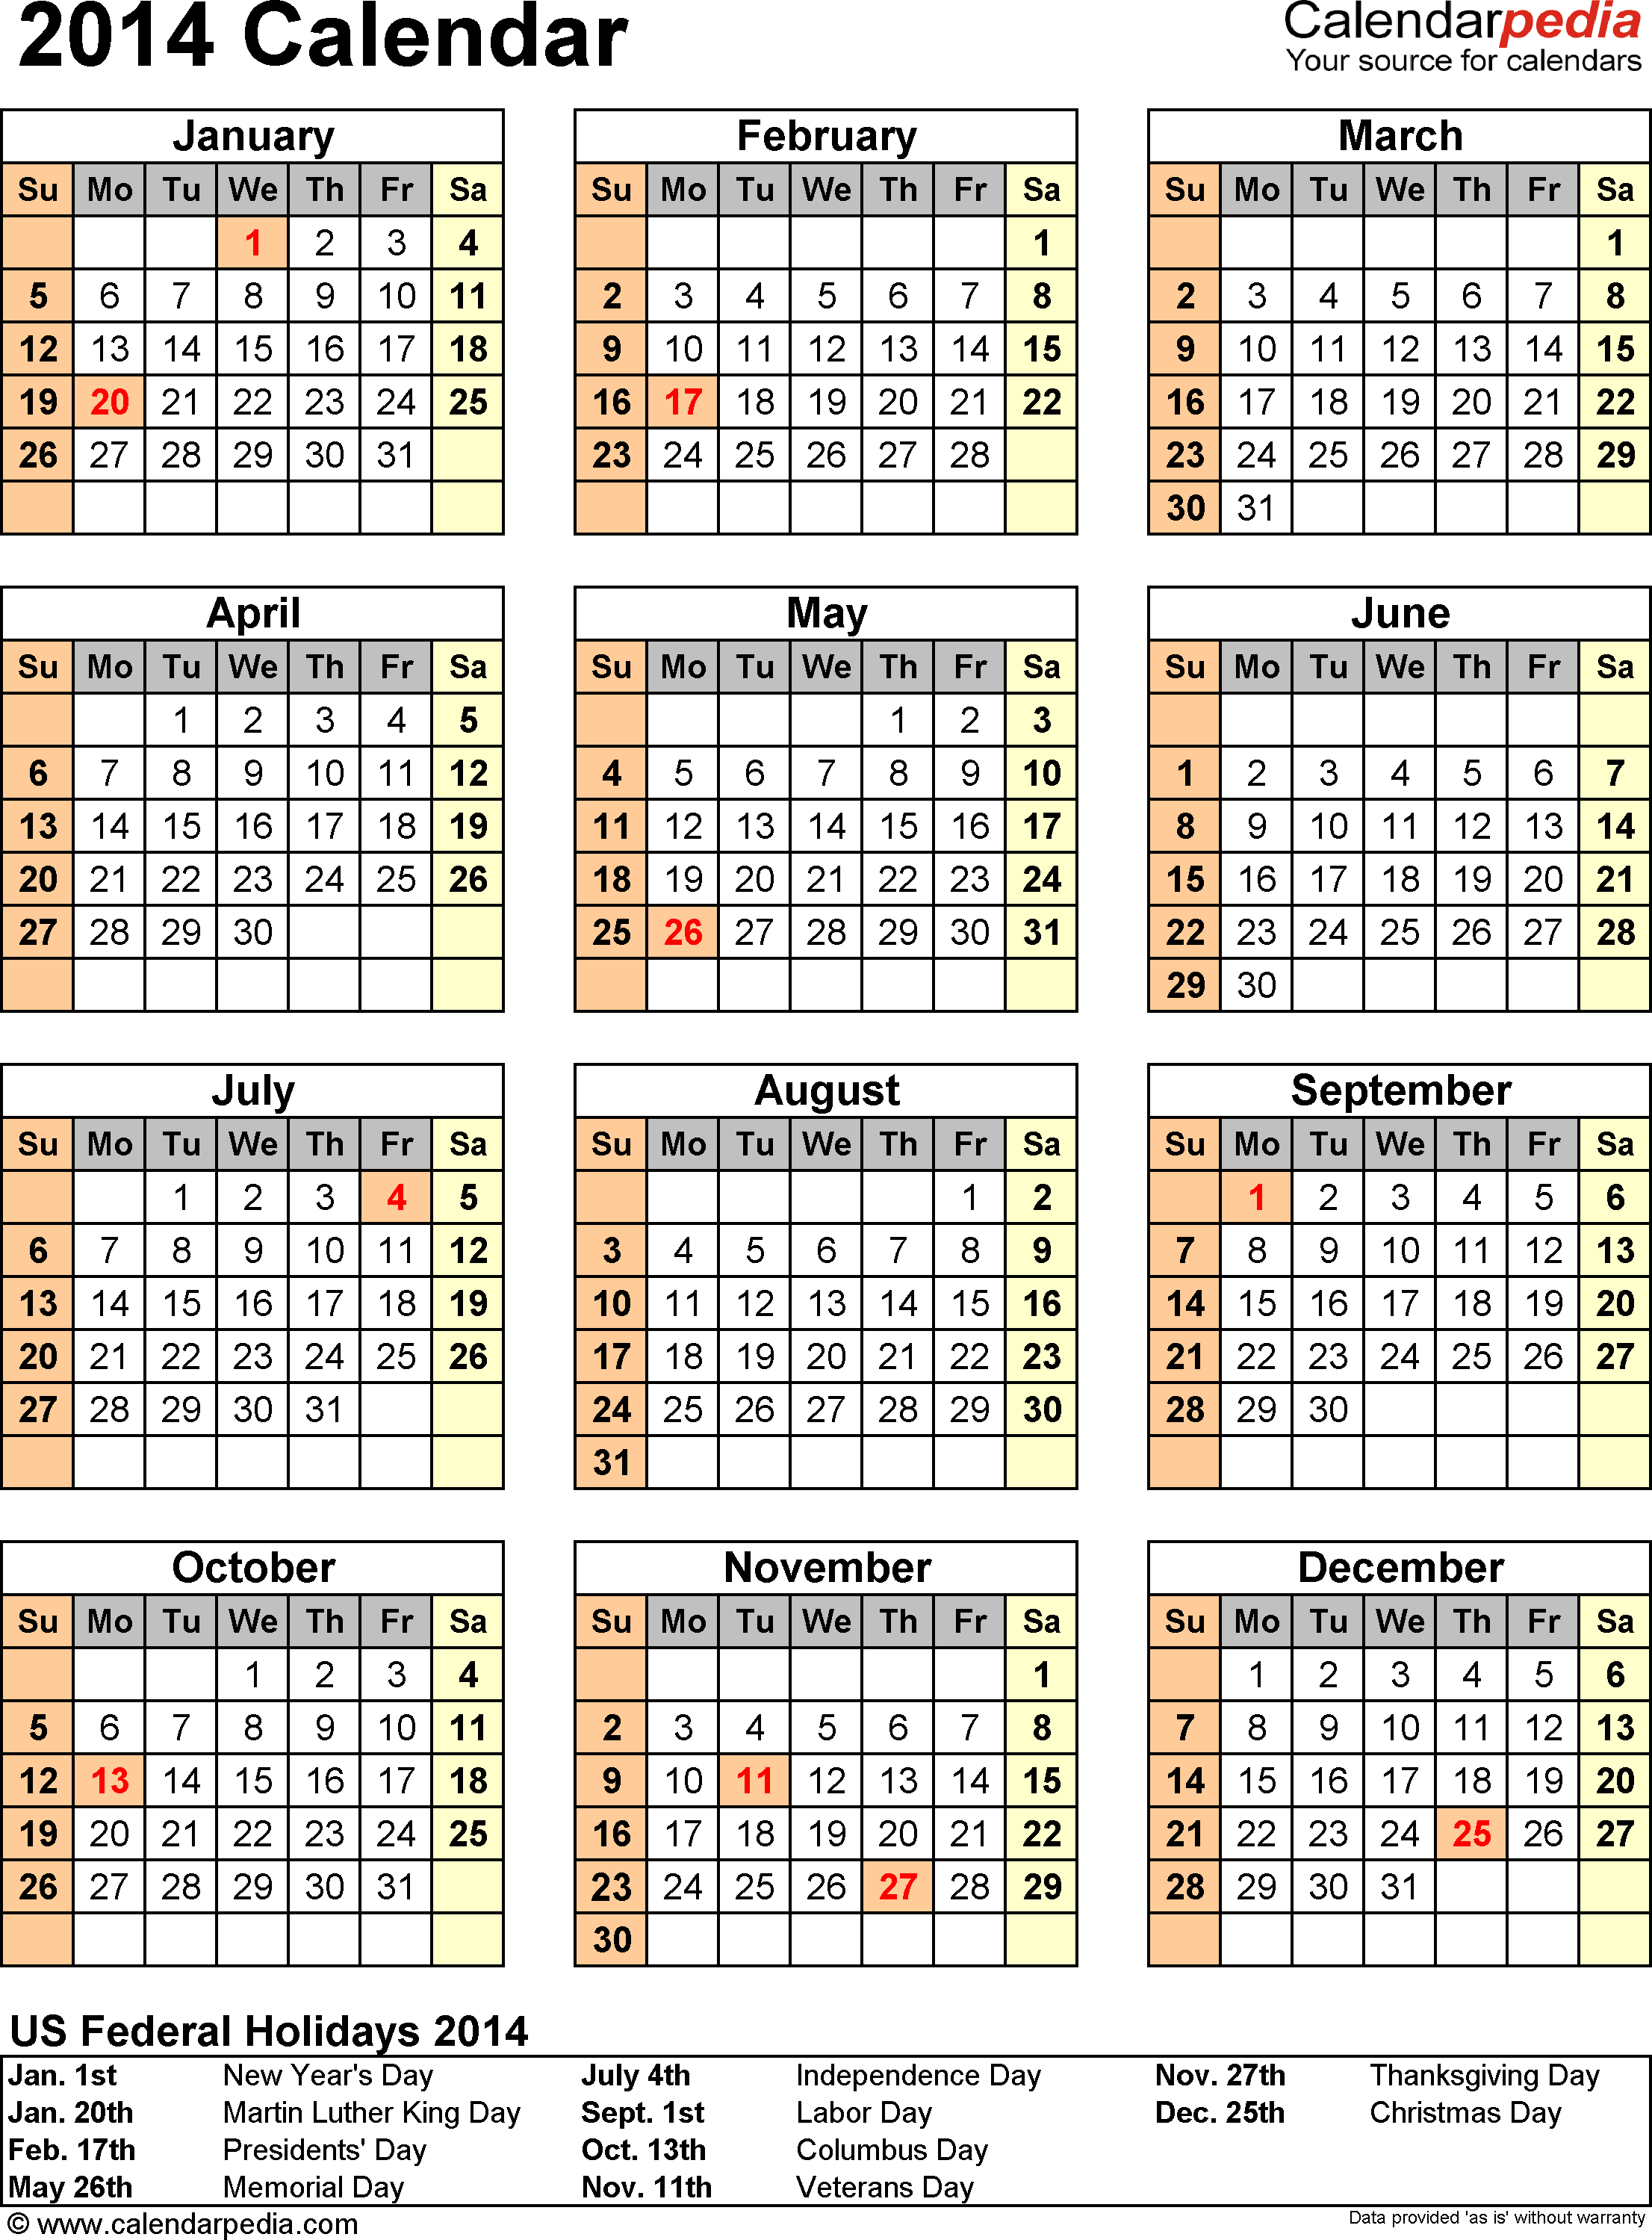 Template 13: 2014 Calendar for Excel, 1 page, portrait orientation